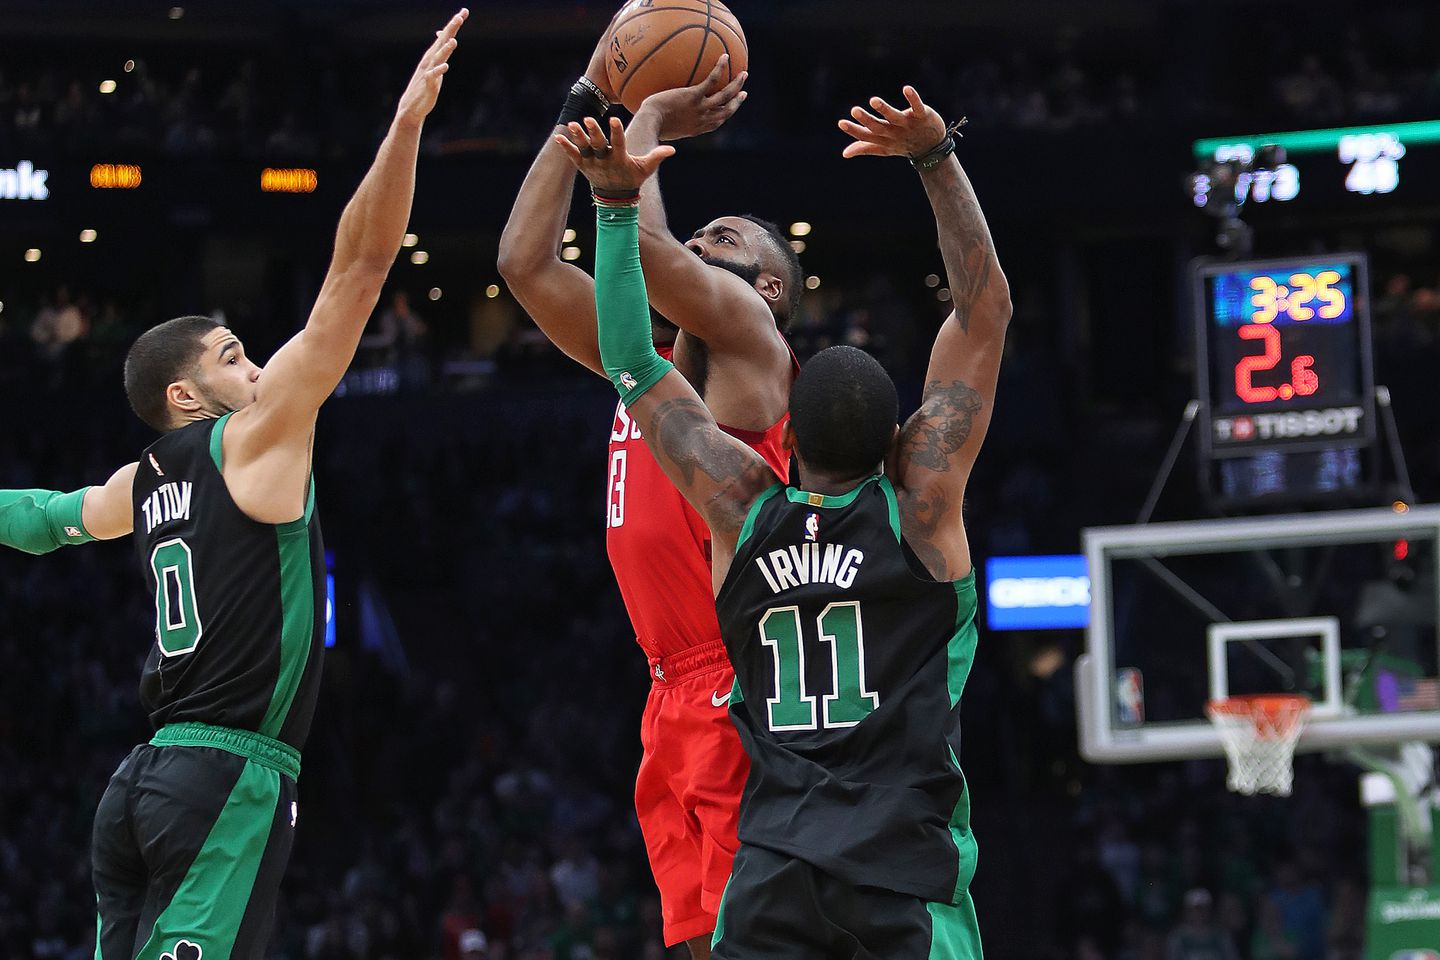 sports shoes 6002b 154c1 James Harden fired up a desperation 3-pointer as Jayson Tatum and Kyrie  Irving defended